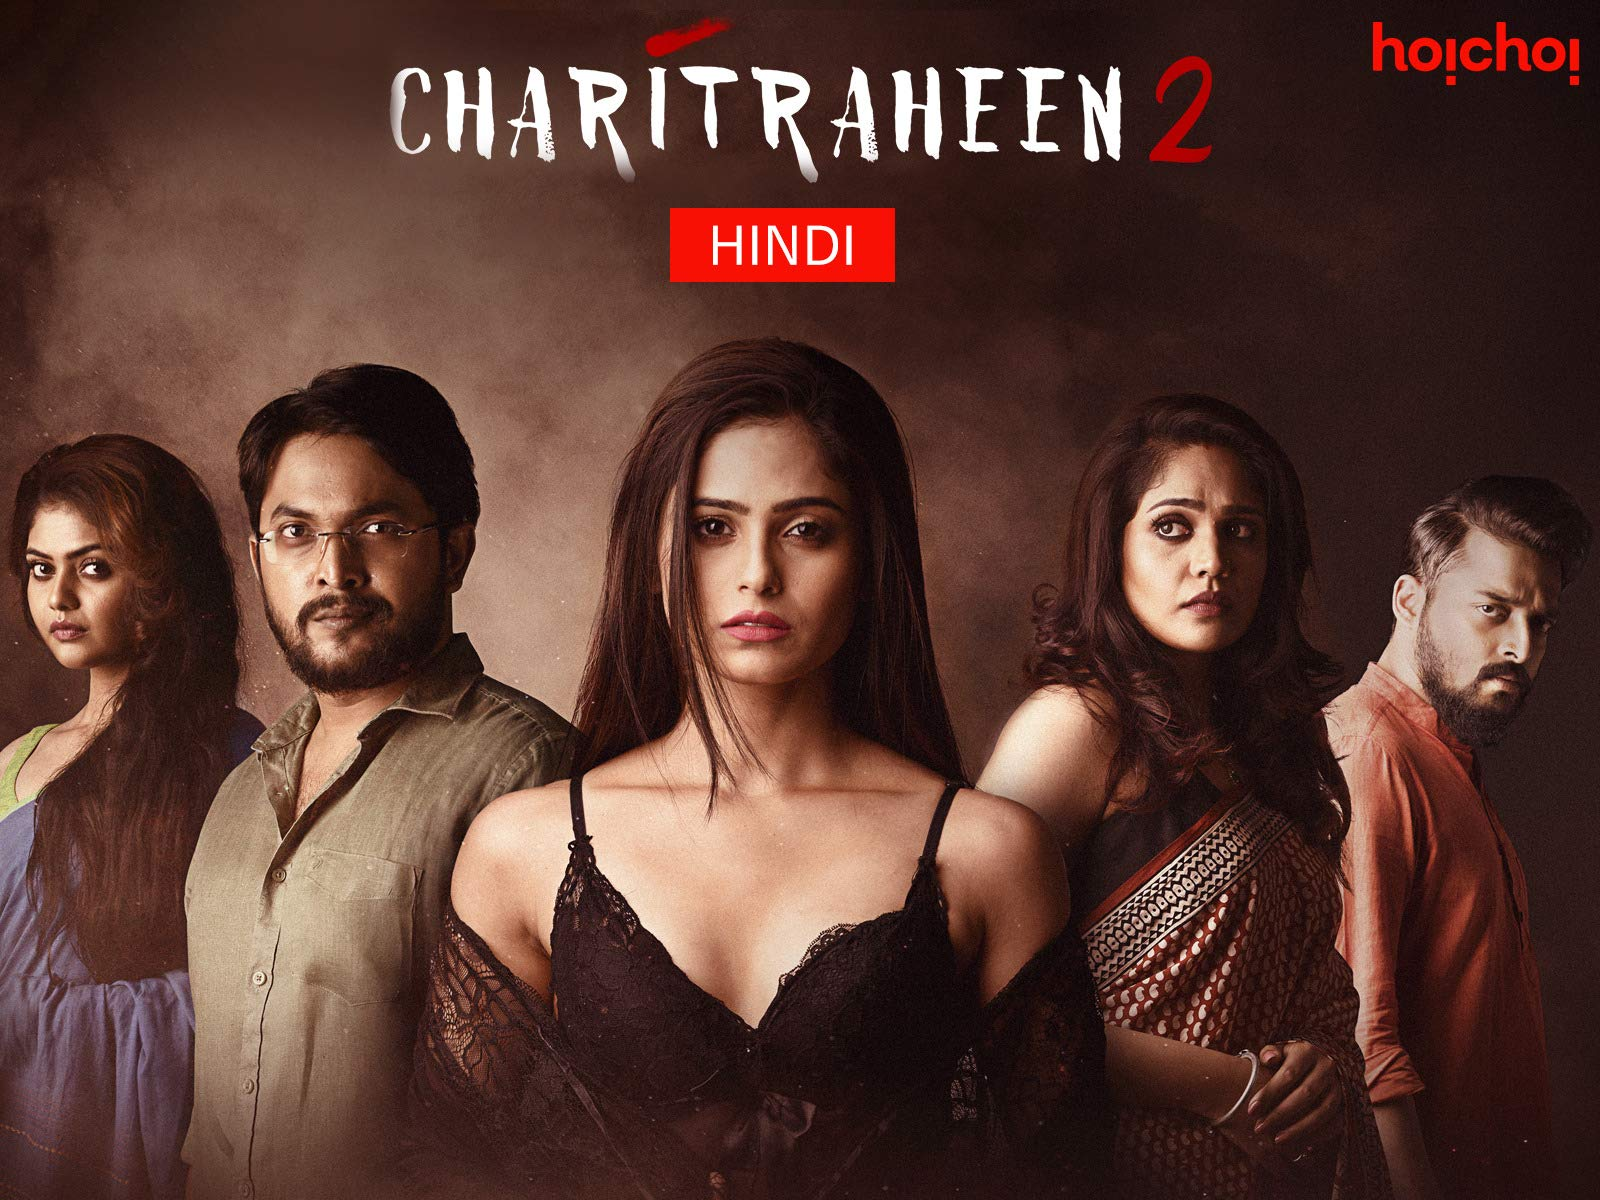 Watch Charitraheen - Hindi | Prime Video